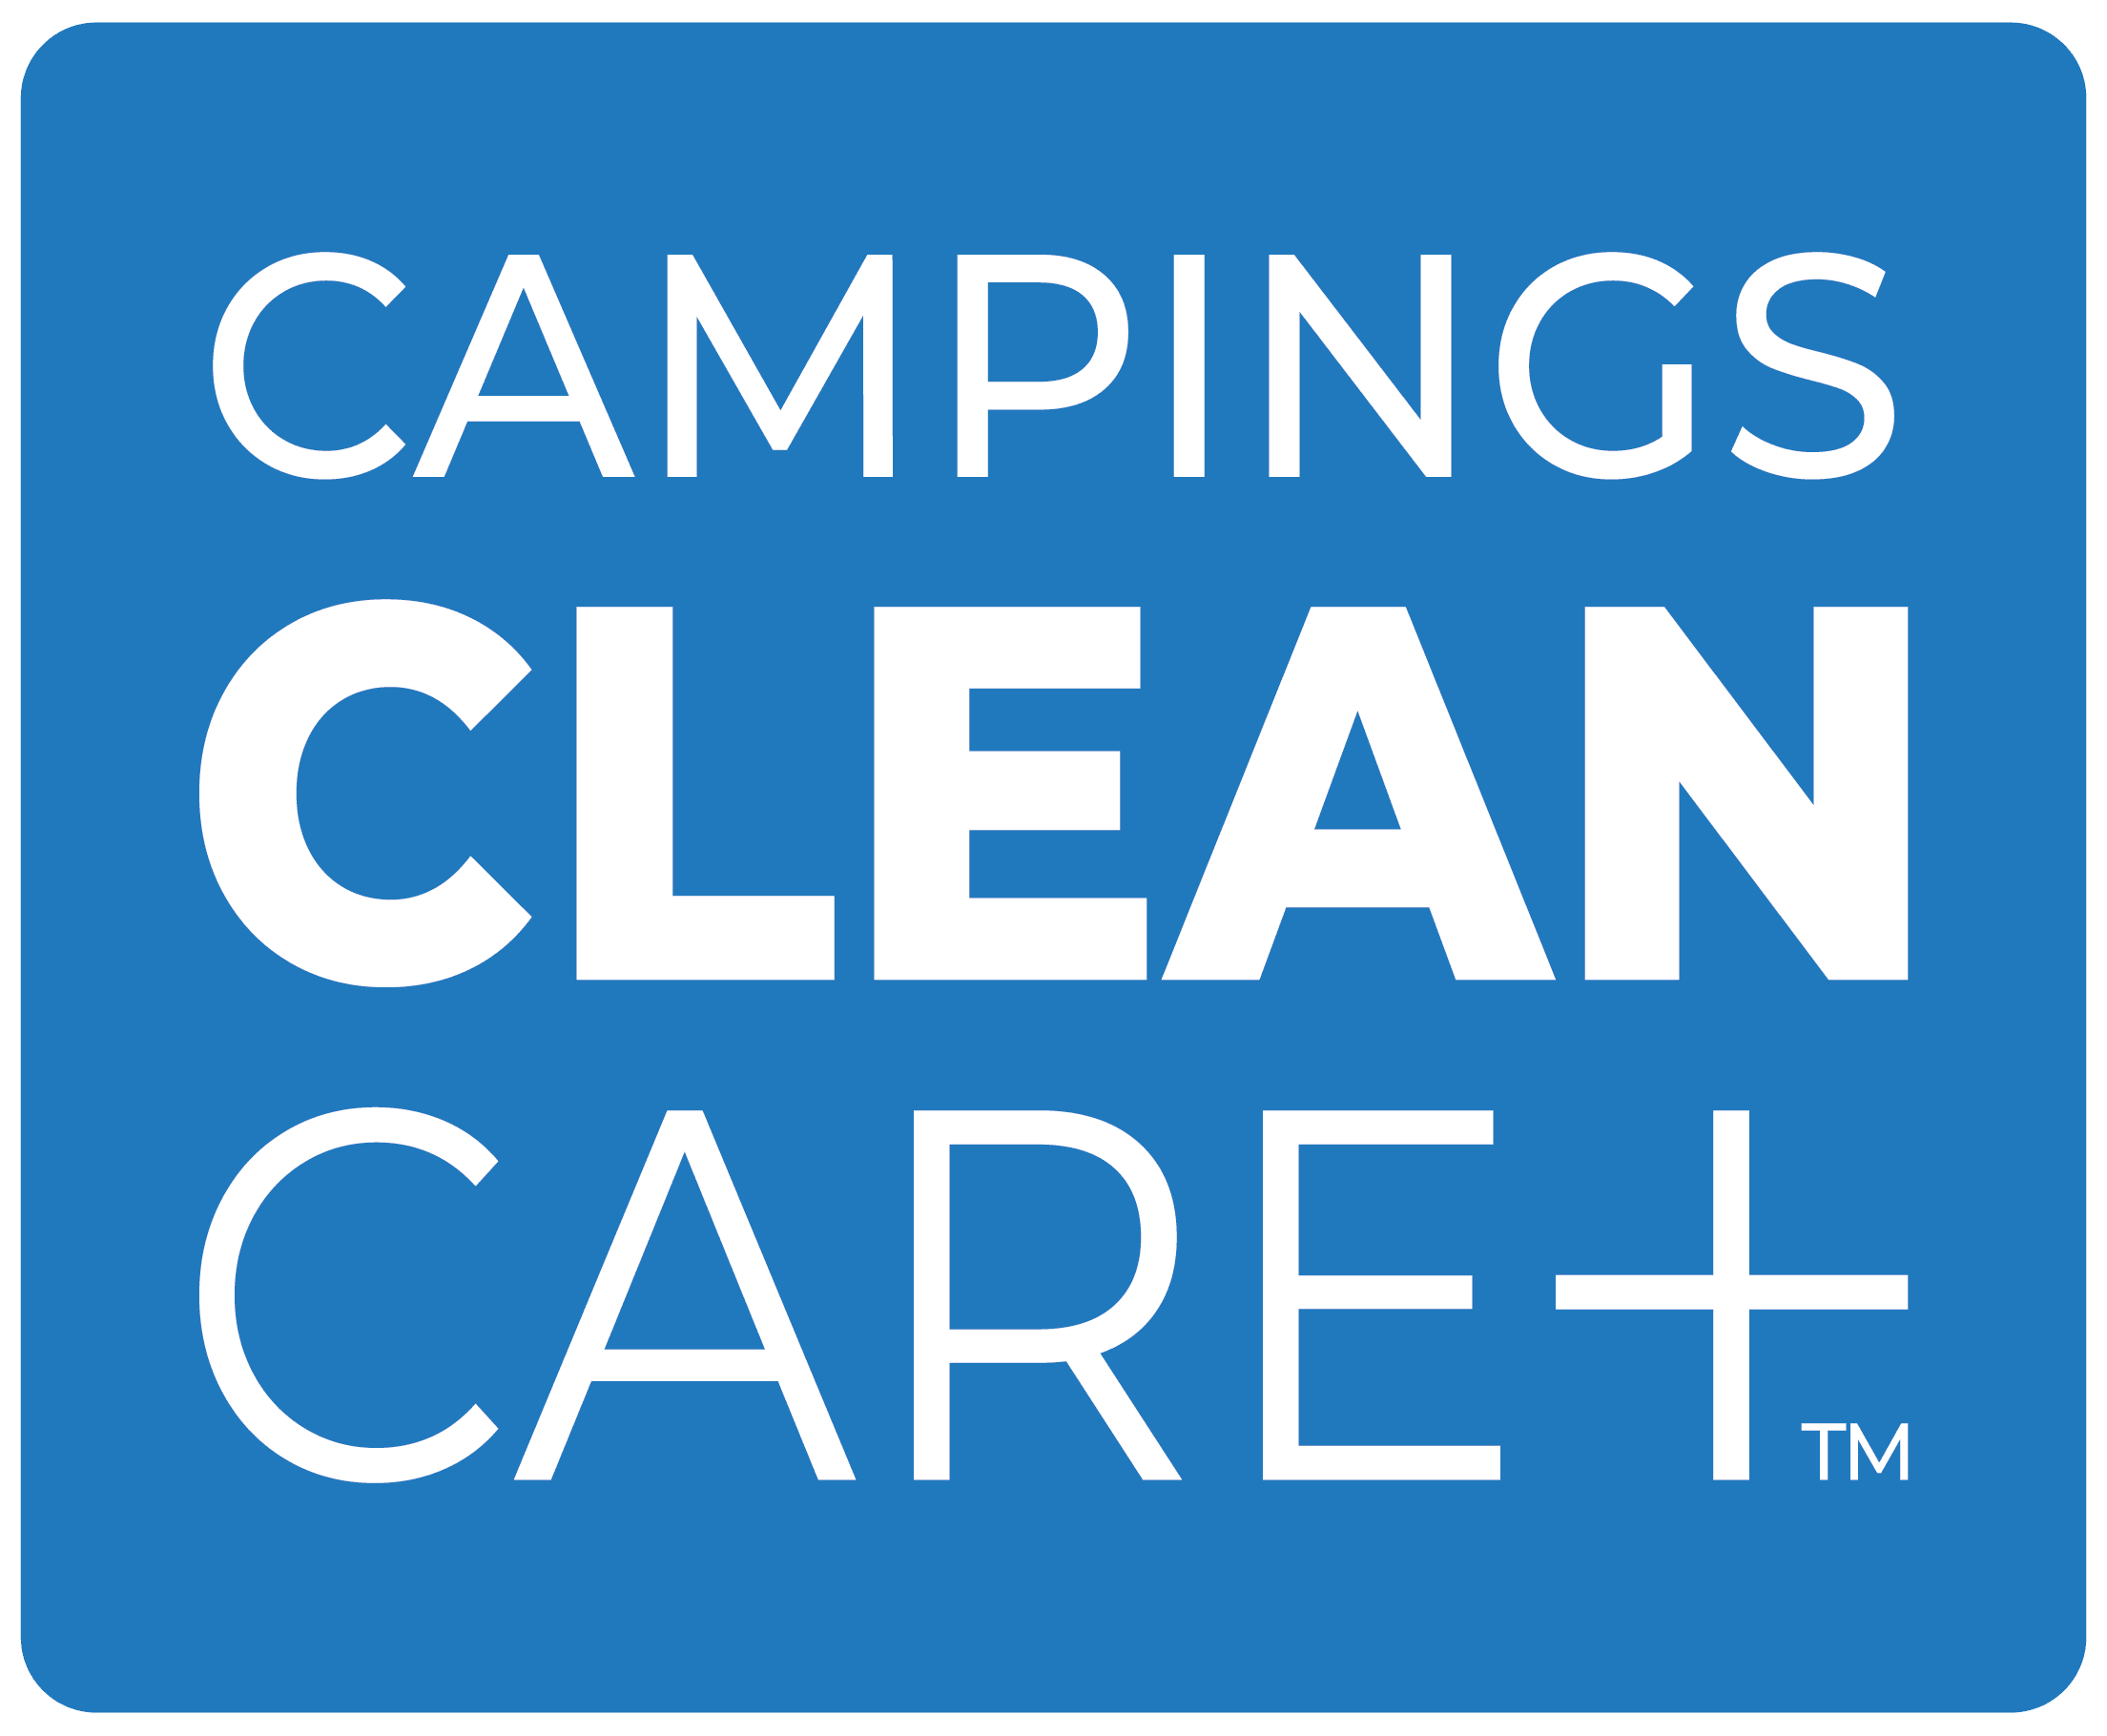 Logo_Clean_Care_bleu-1.png - 42.86 kB